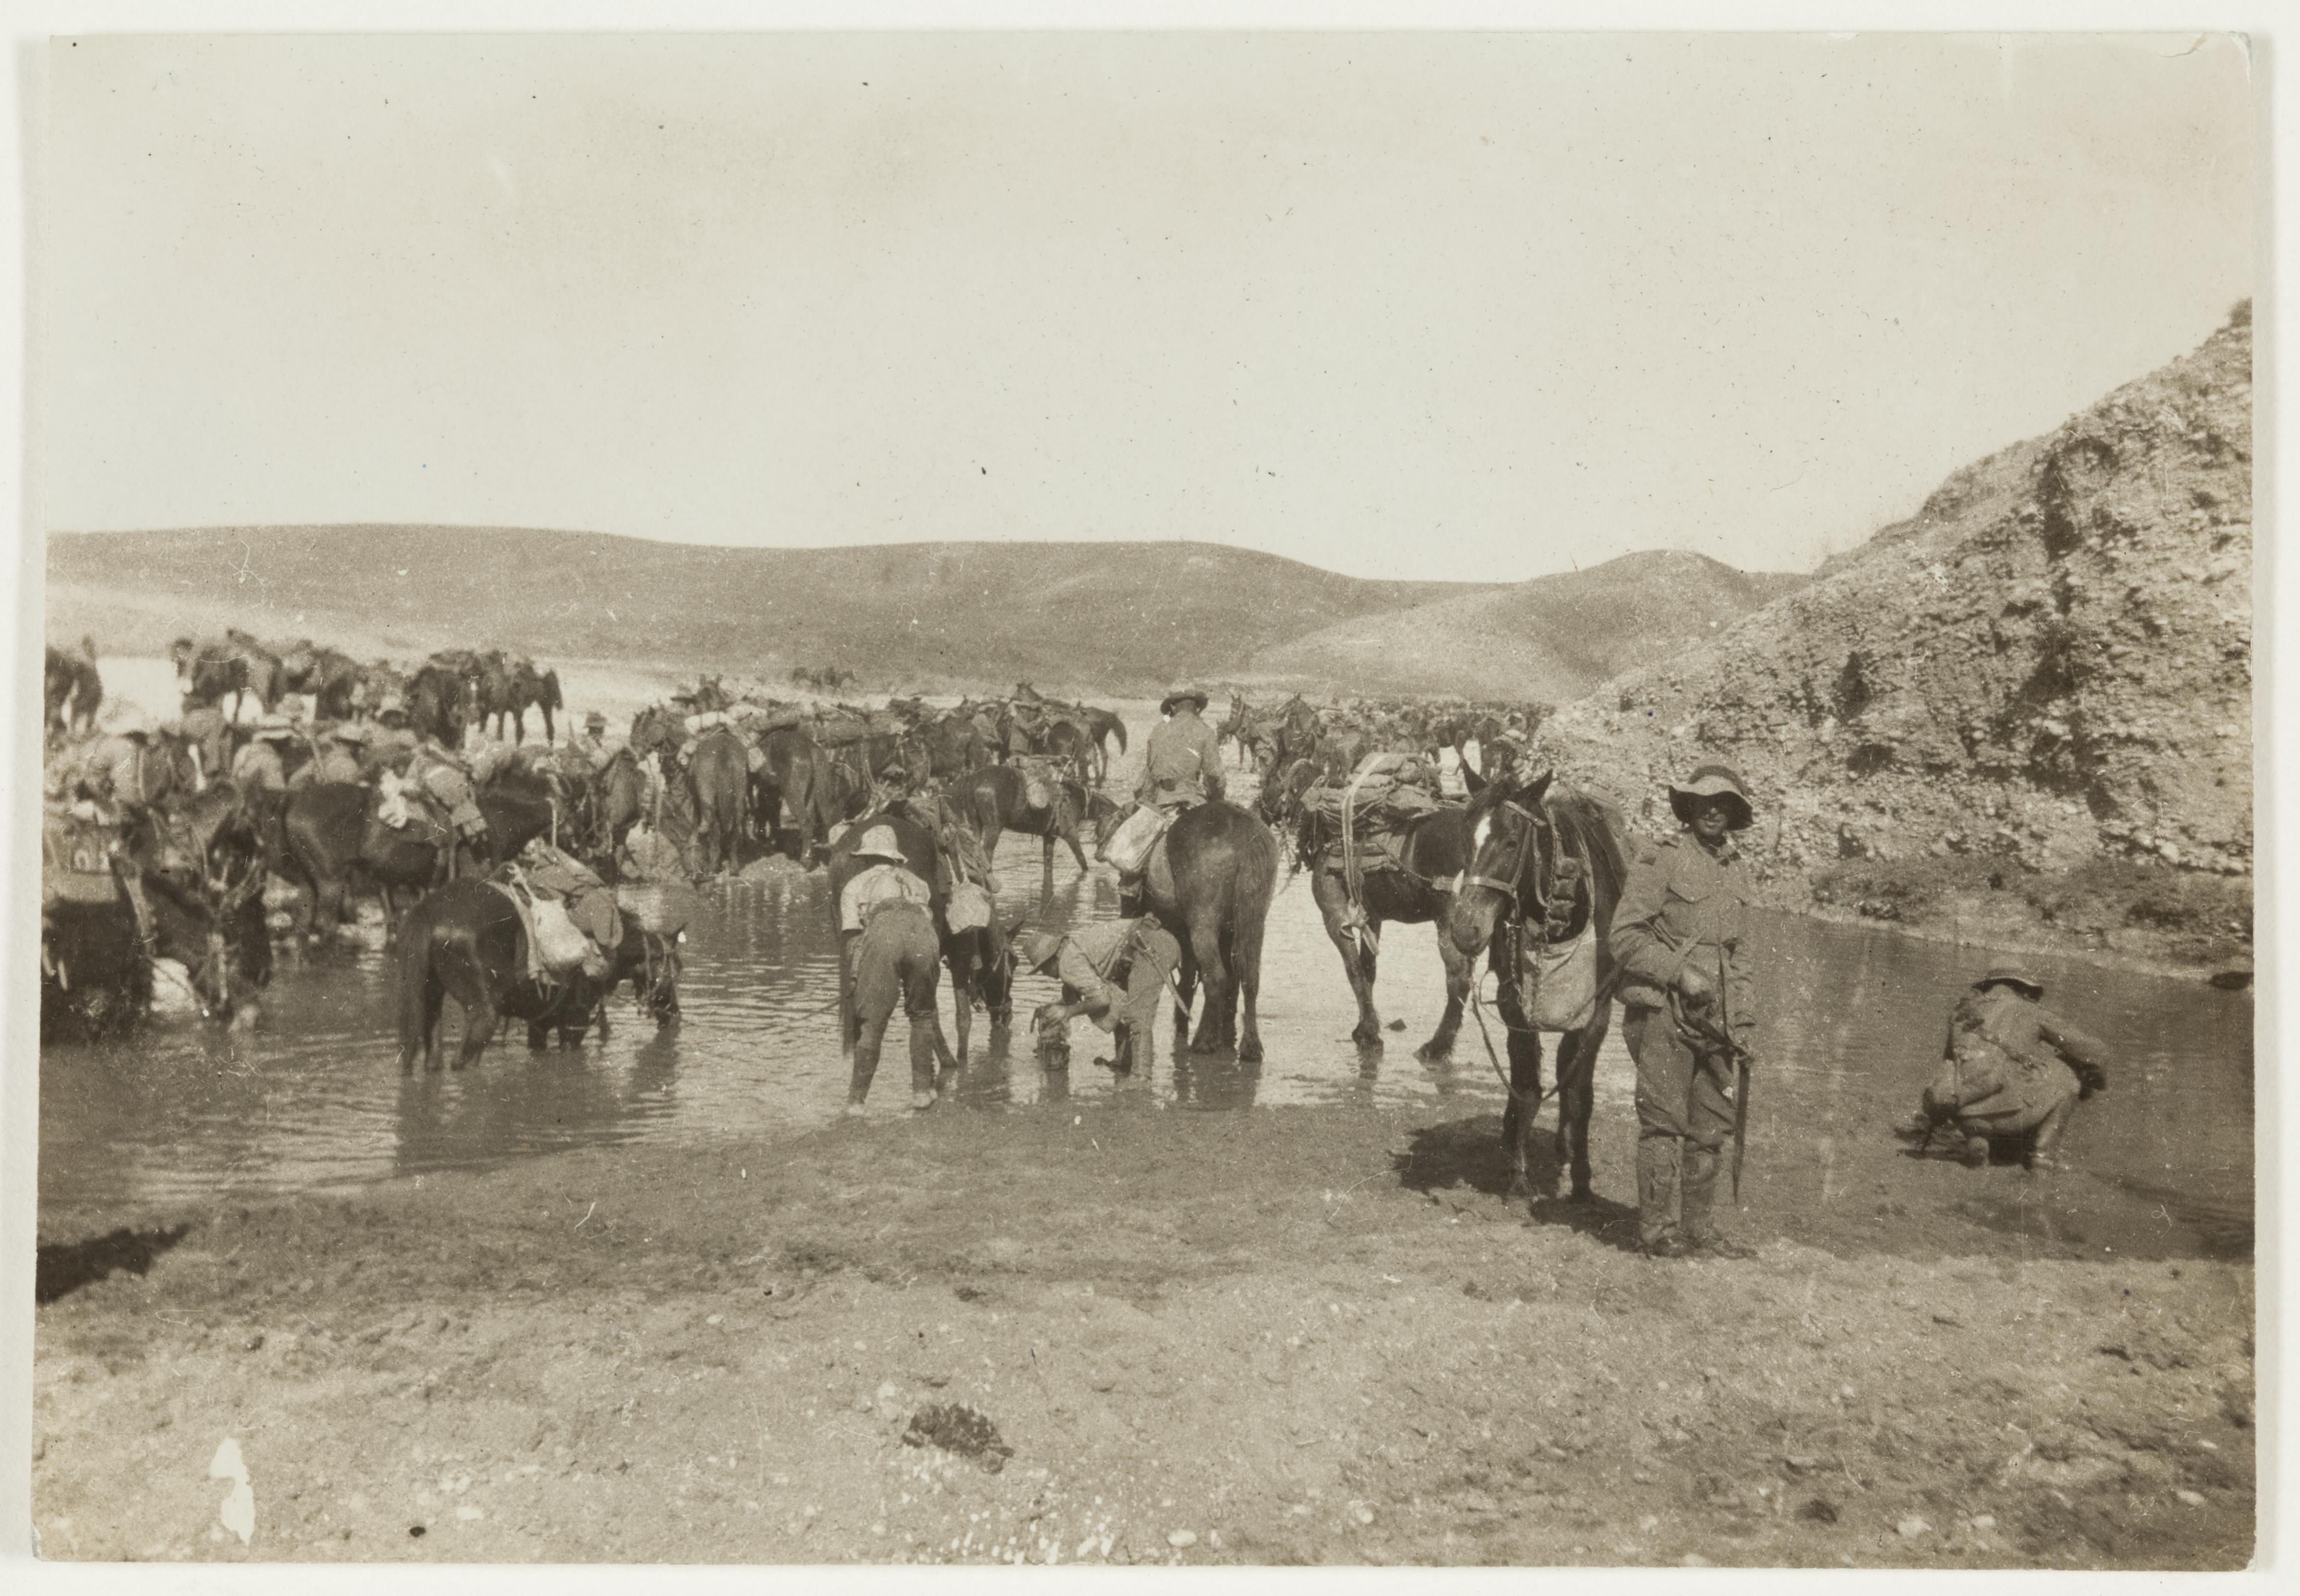 Watering horses at Ludd  by J.F. Smith of the 7th Light Horse in Egypt and Palestine, c. 1914-1918